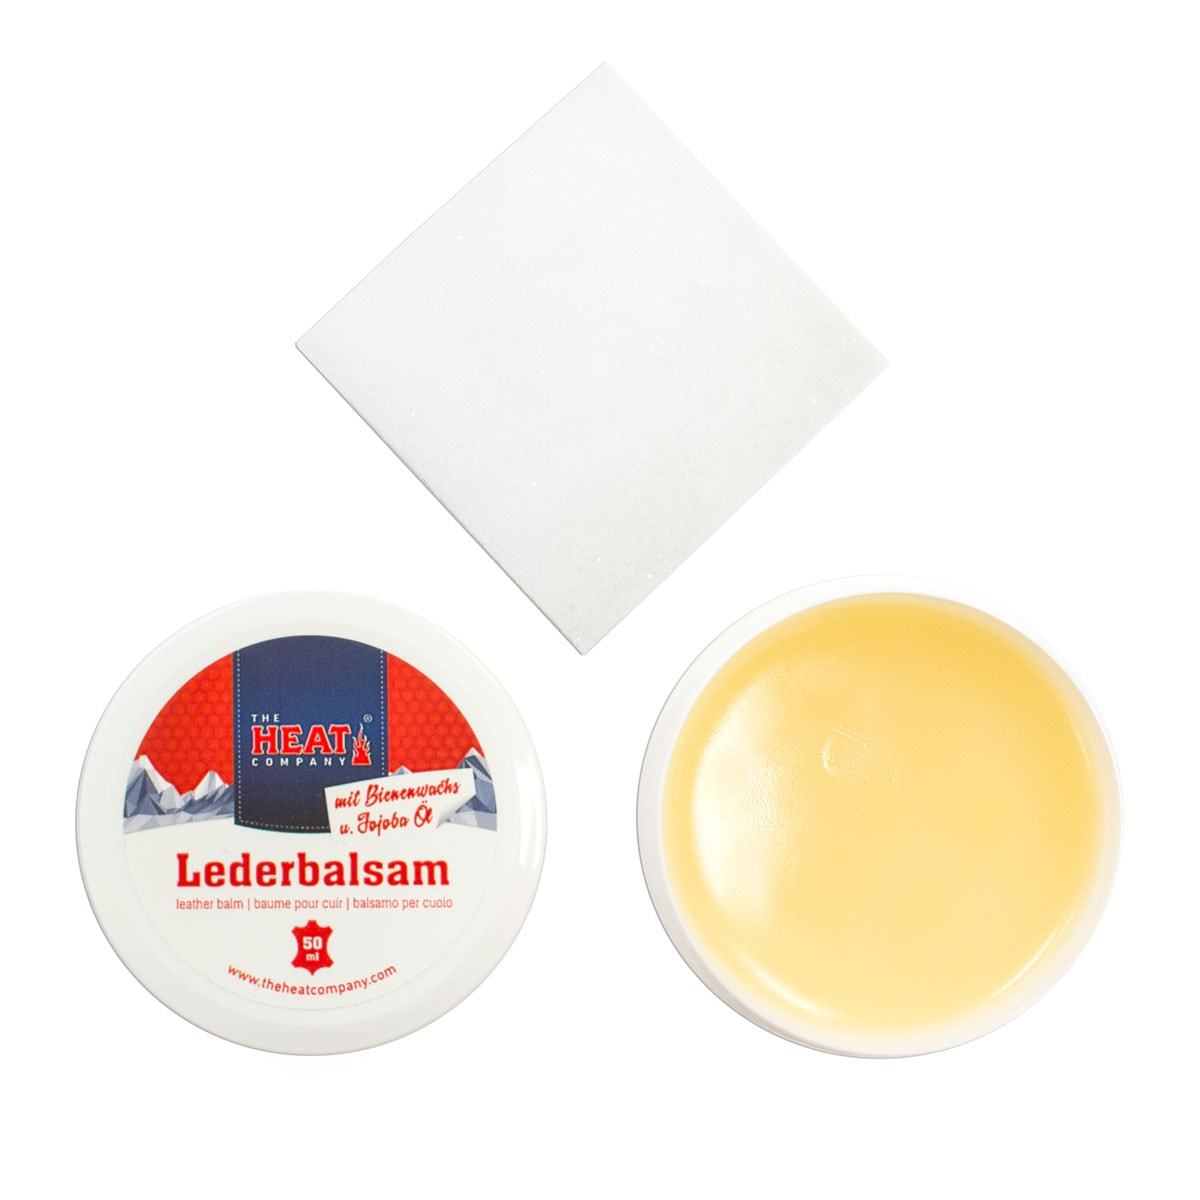 HEAT LEATHER BALM 1.7 FL OZ